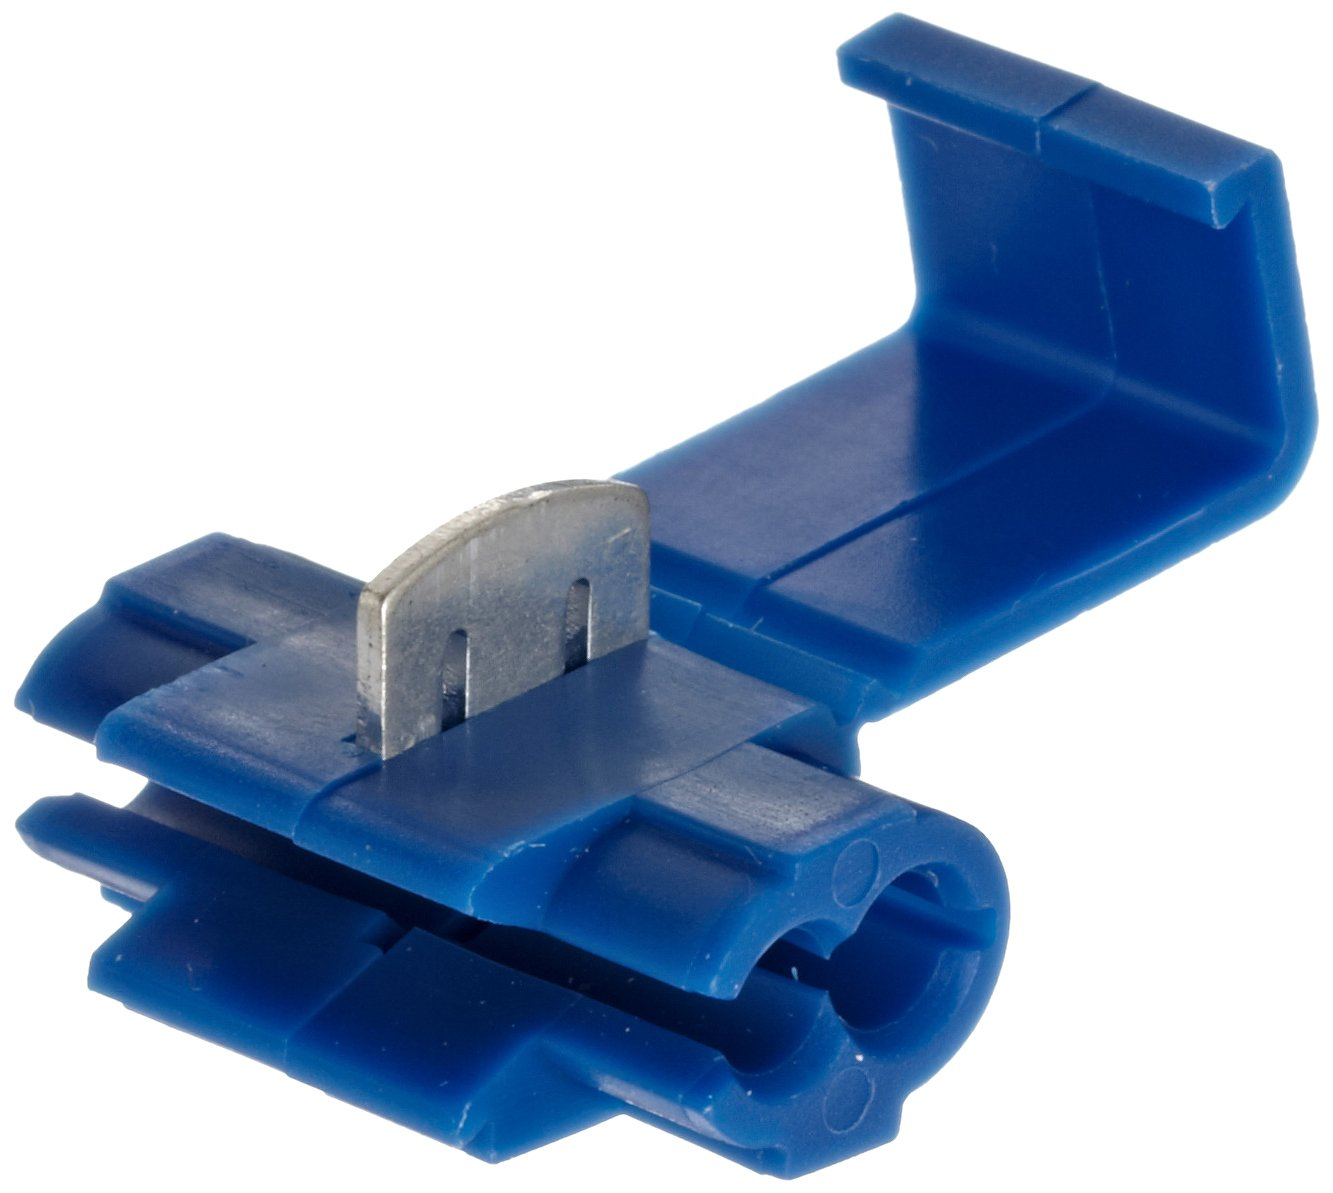 morris products 10774 quick splice connector blue 18 14 wire range rh amazon com home wiring splice connectors home wiring splice connectors